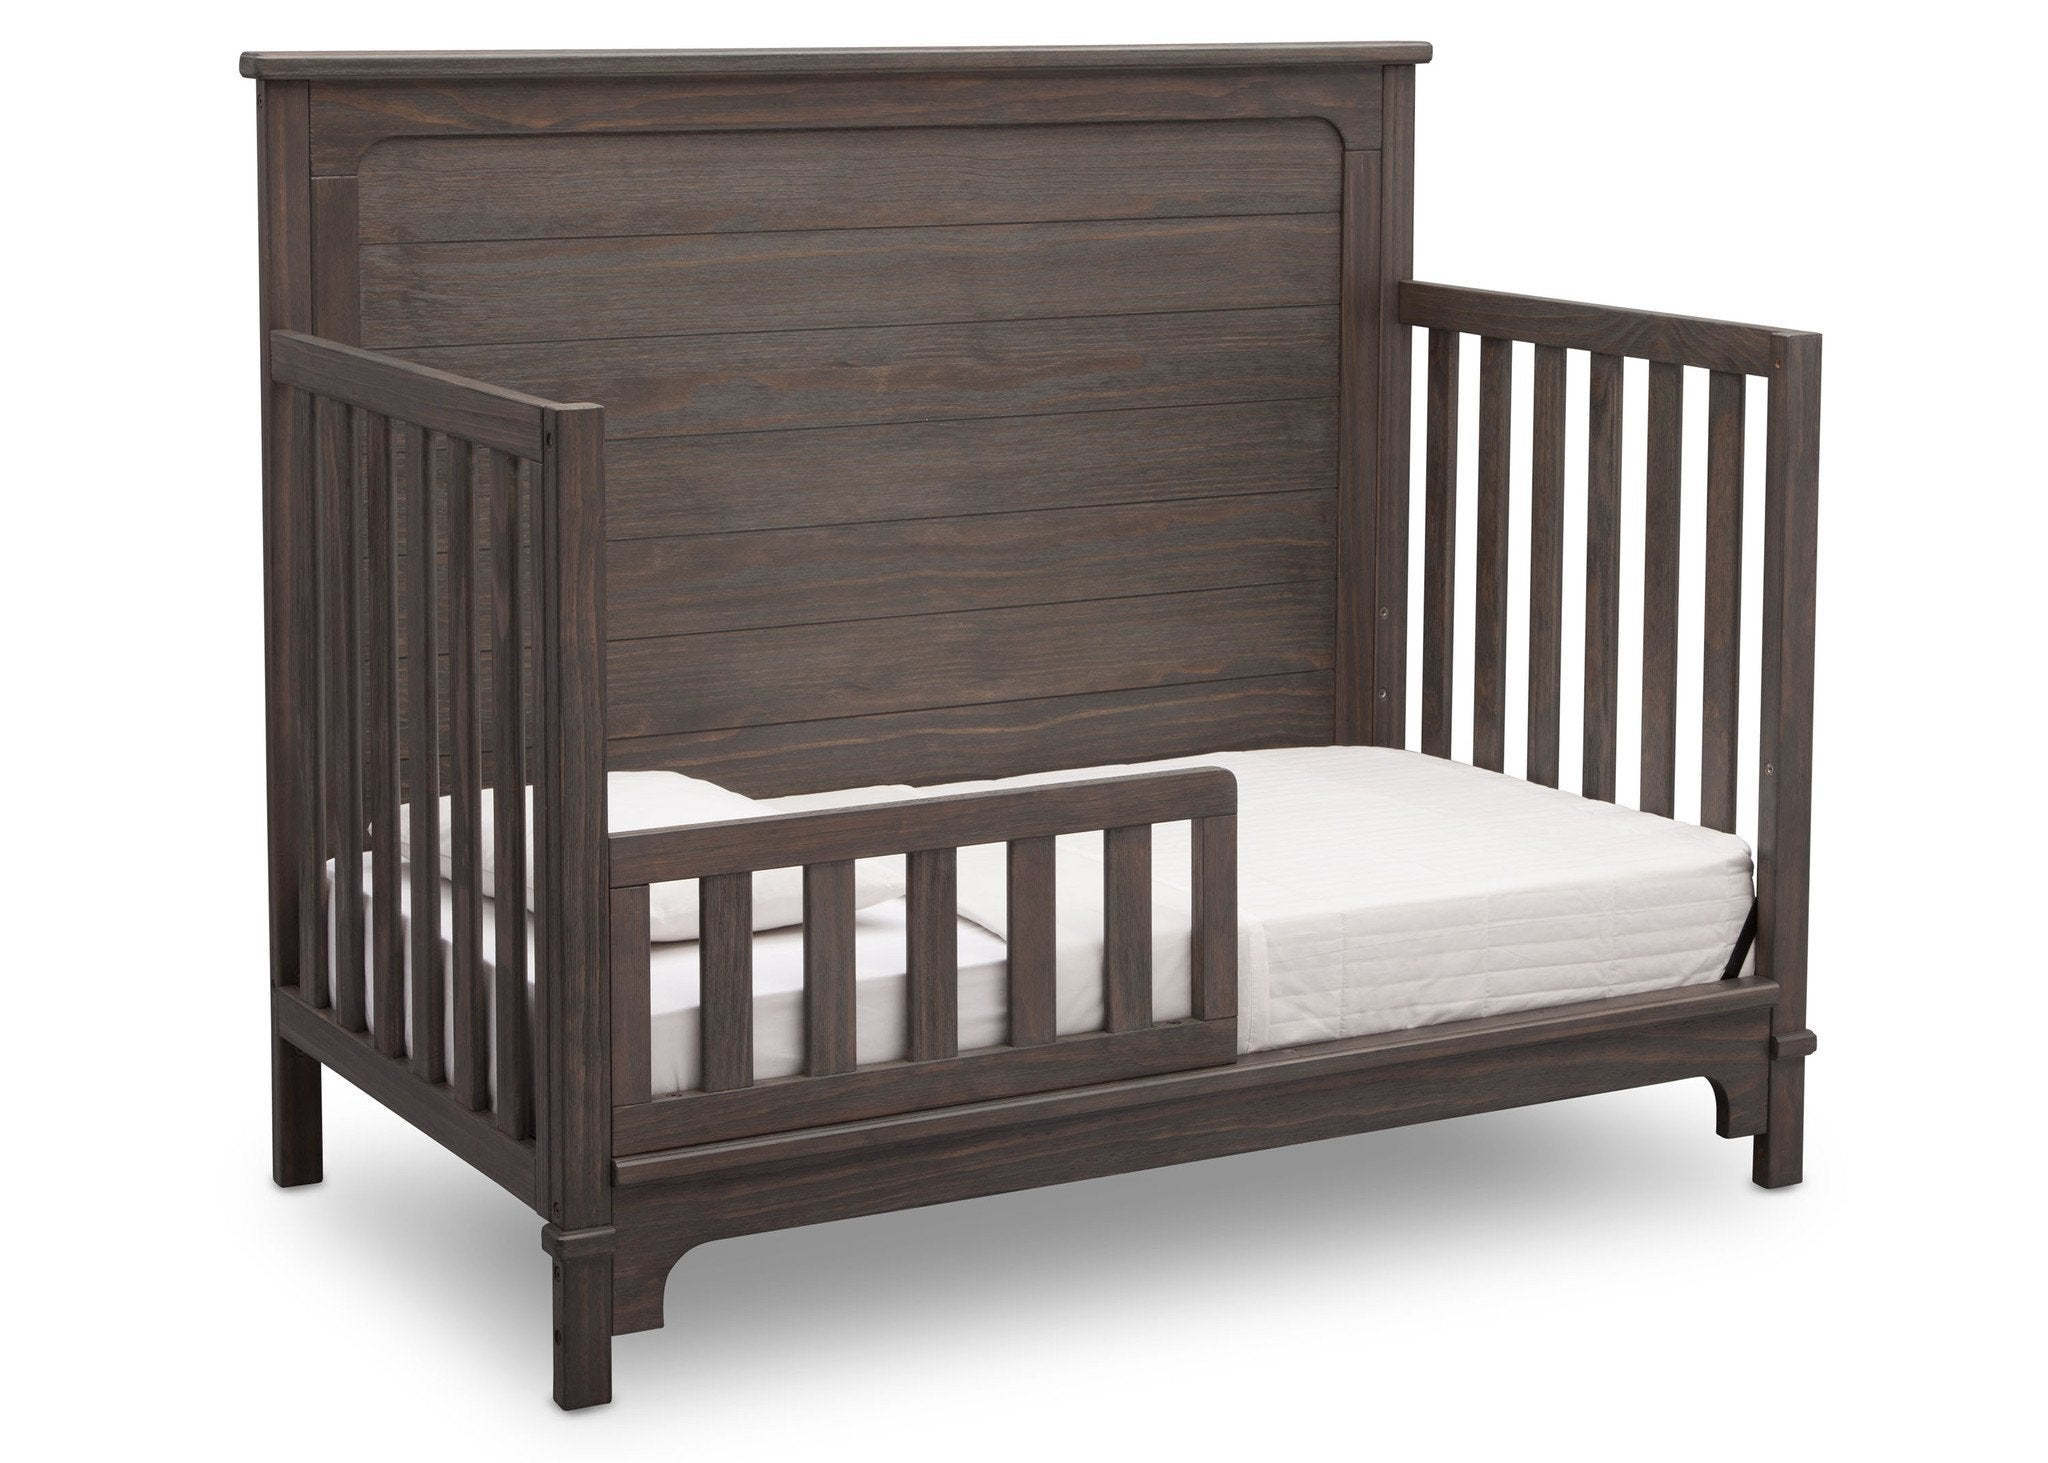 Simmons Kids Rustic Grey (084) Monterey Crib 'N' More, Toddler Bed Conversion Side View a4a